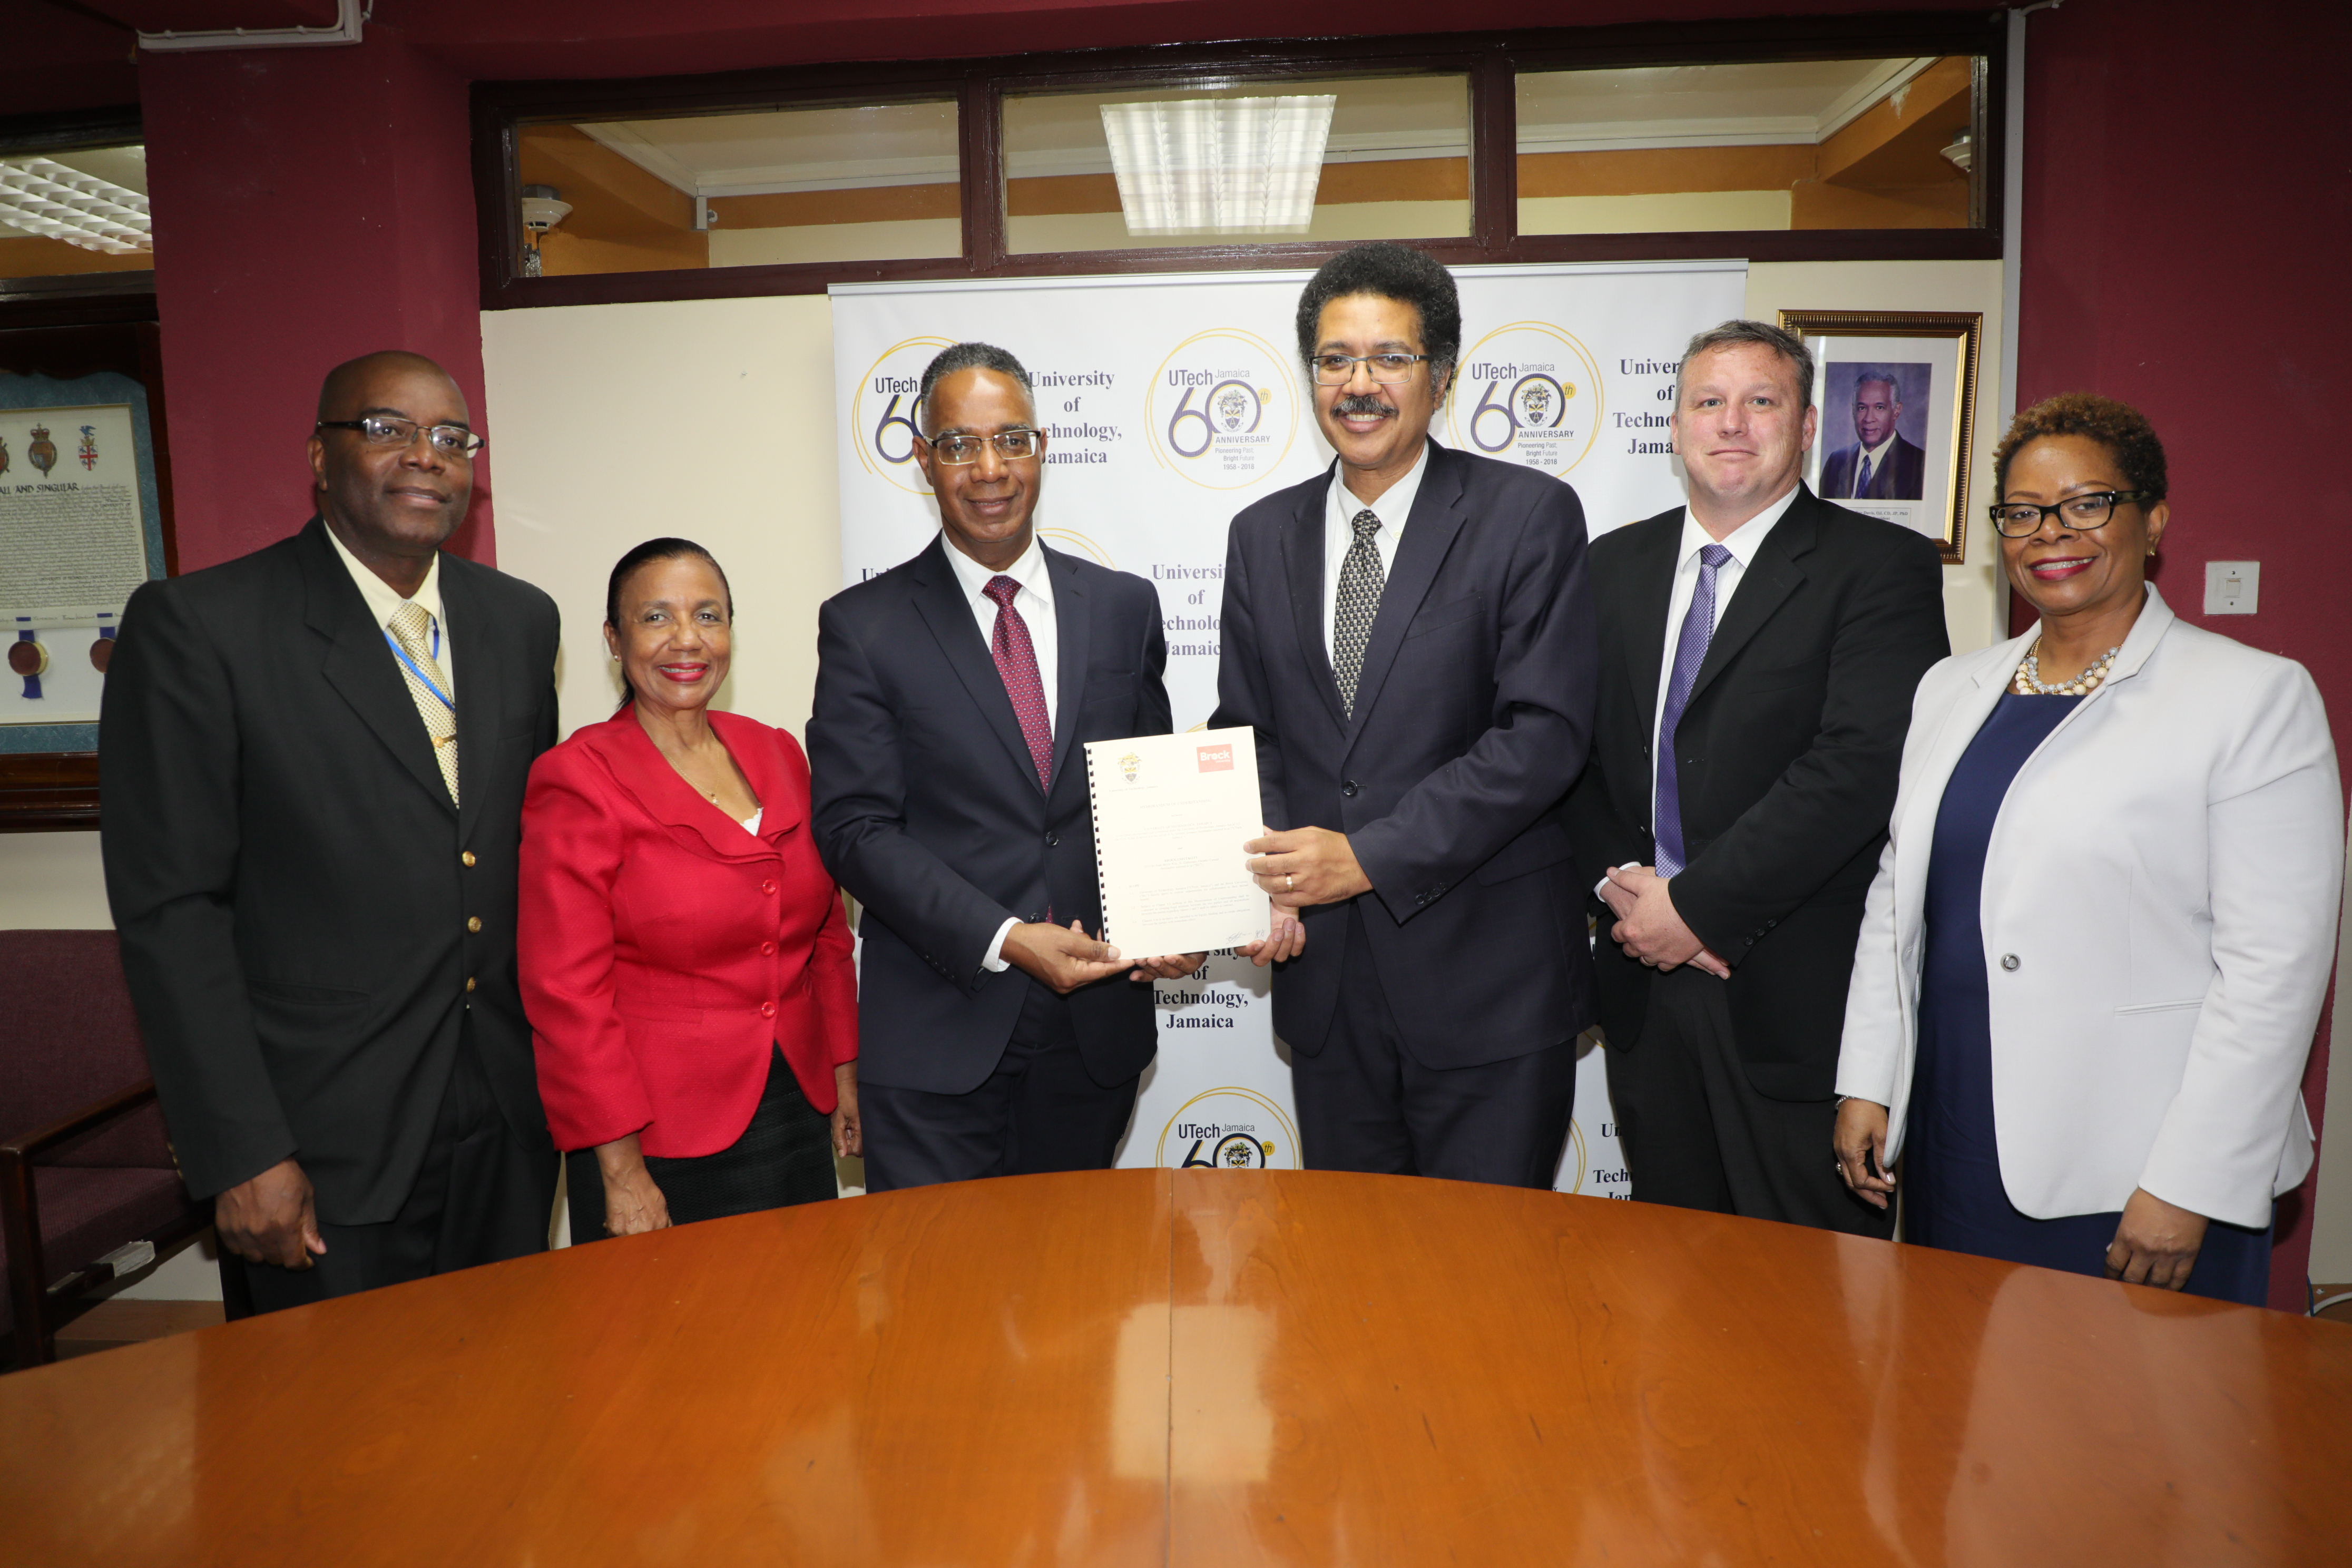 UTech, Jamaica and Brock University Sign MoU  to enhance Scholarship and Research